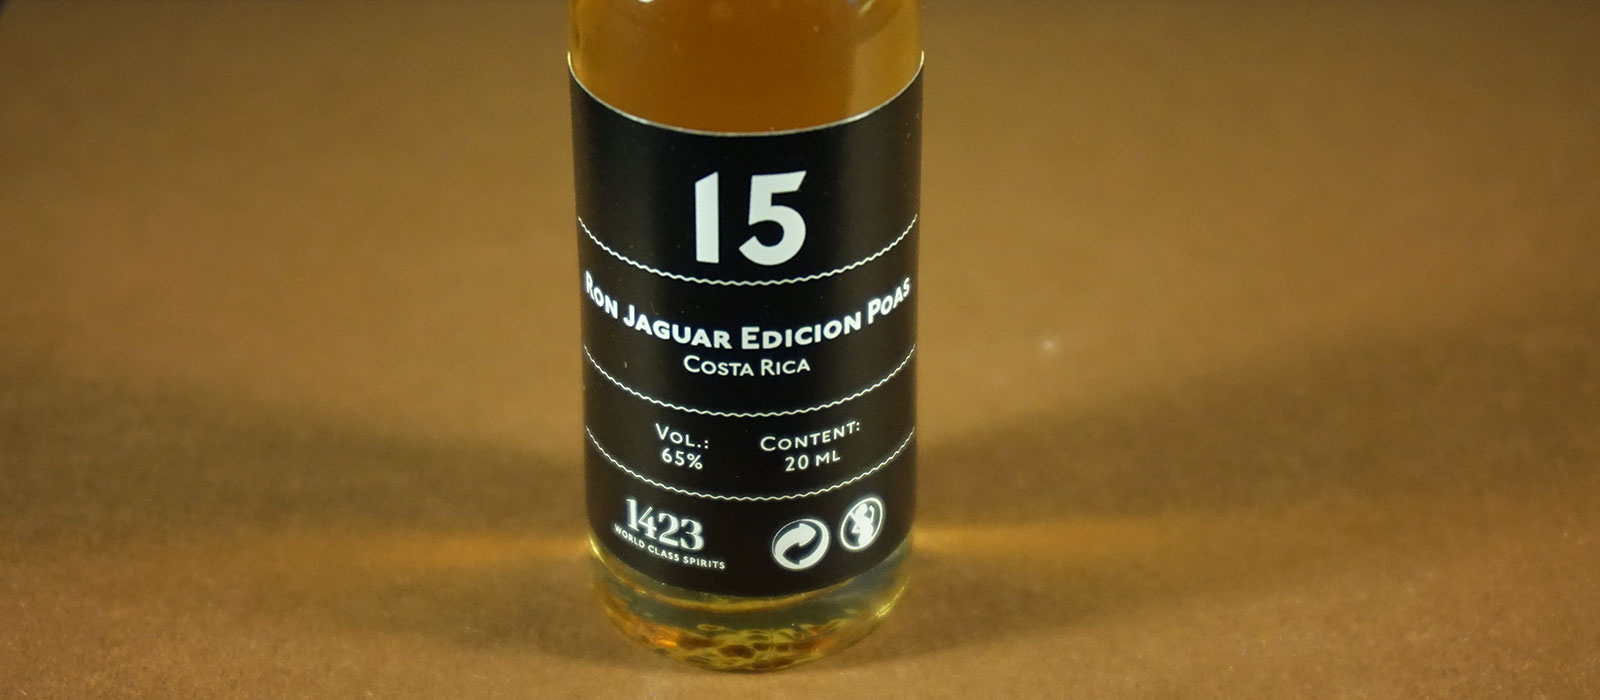 24 Days of Rum 2017: Dag 15 – Ron Jaguar Edicion Poas